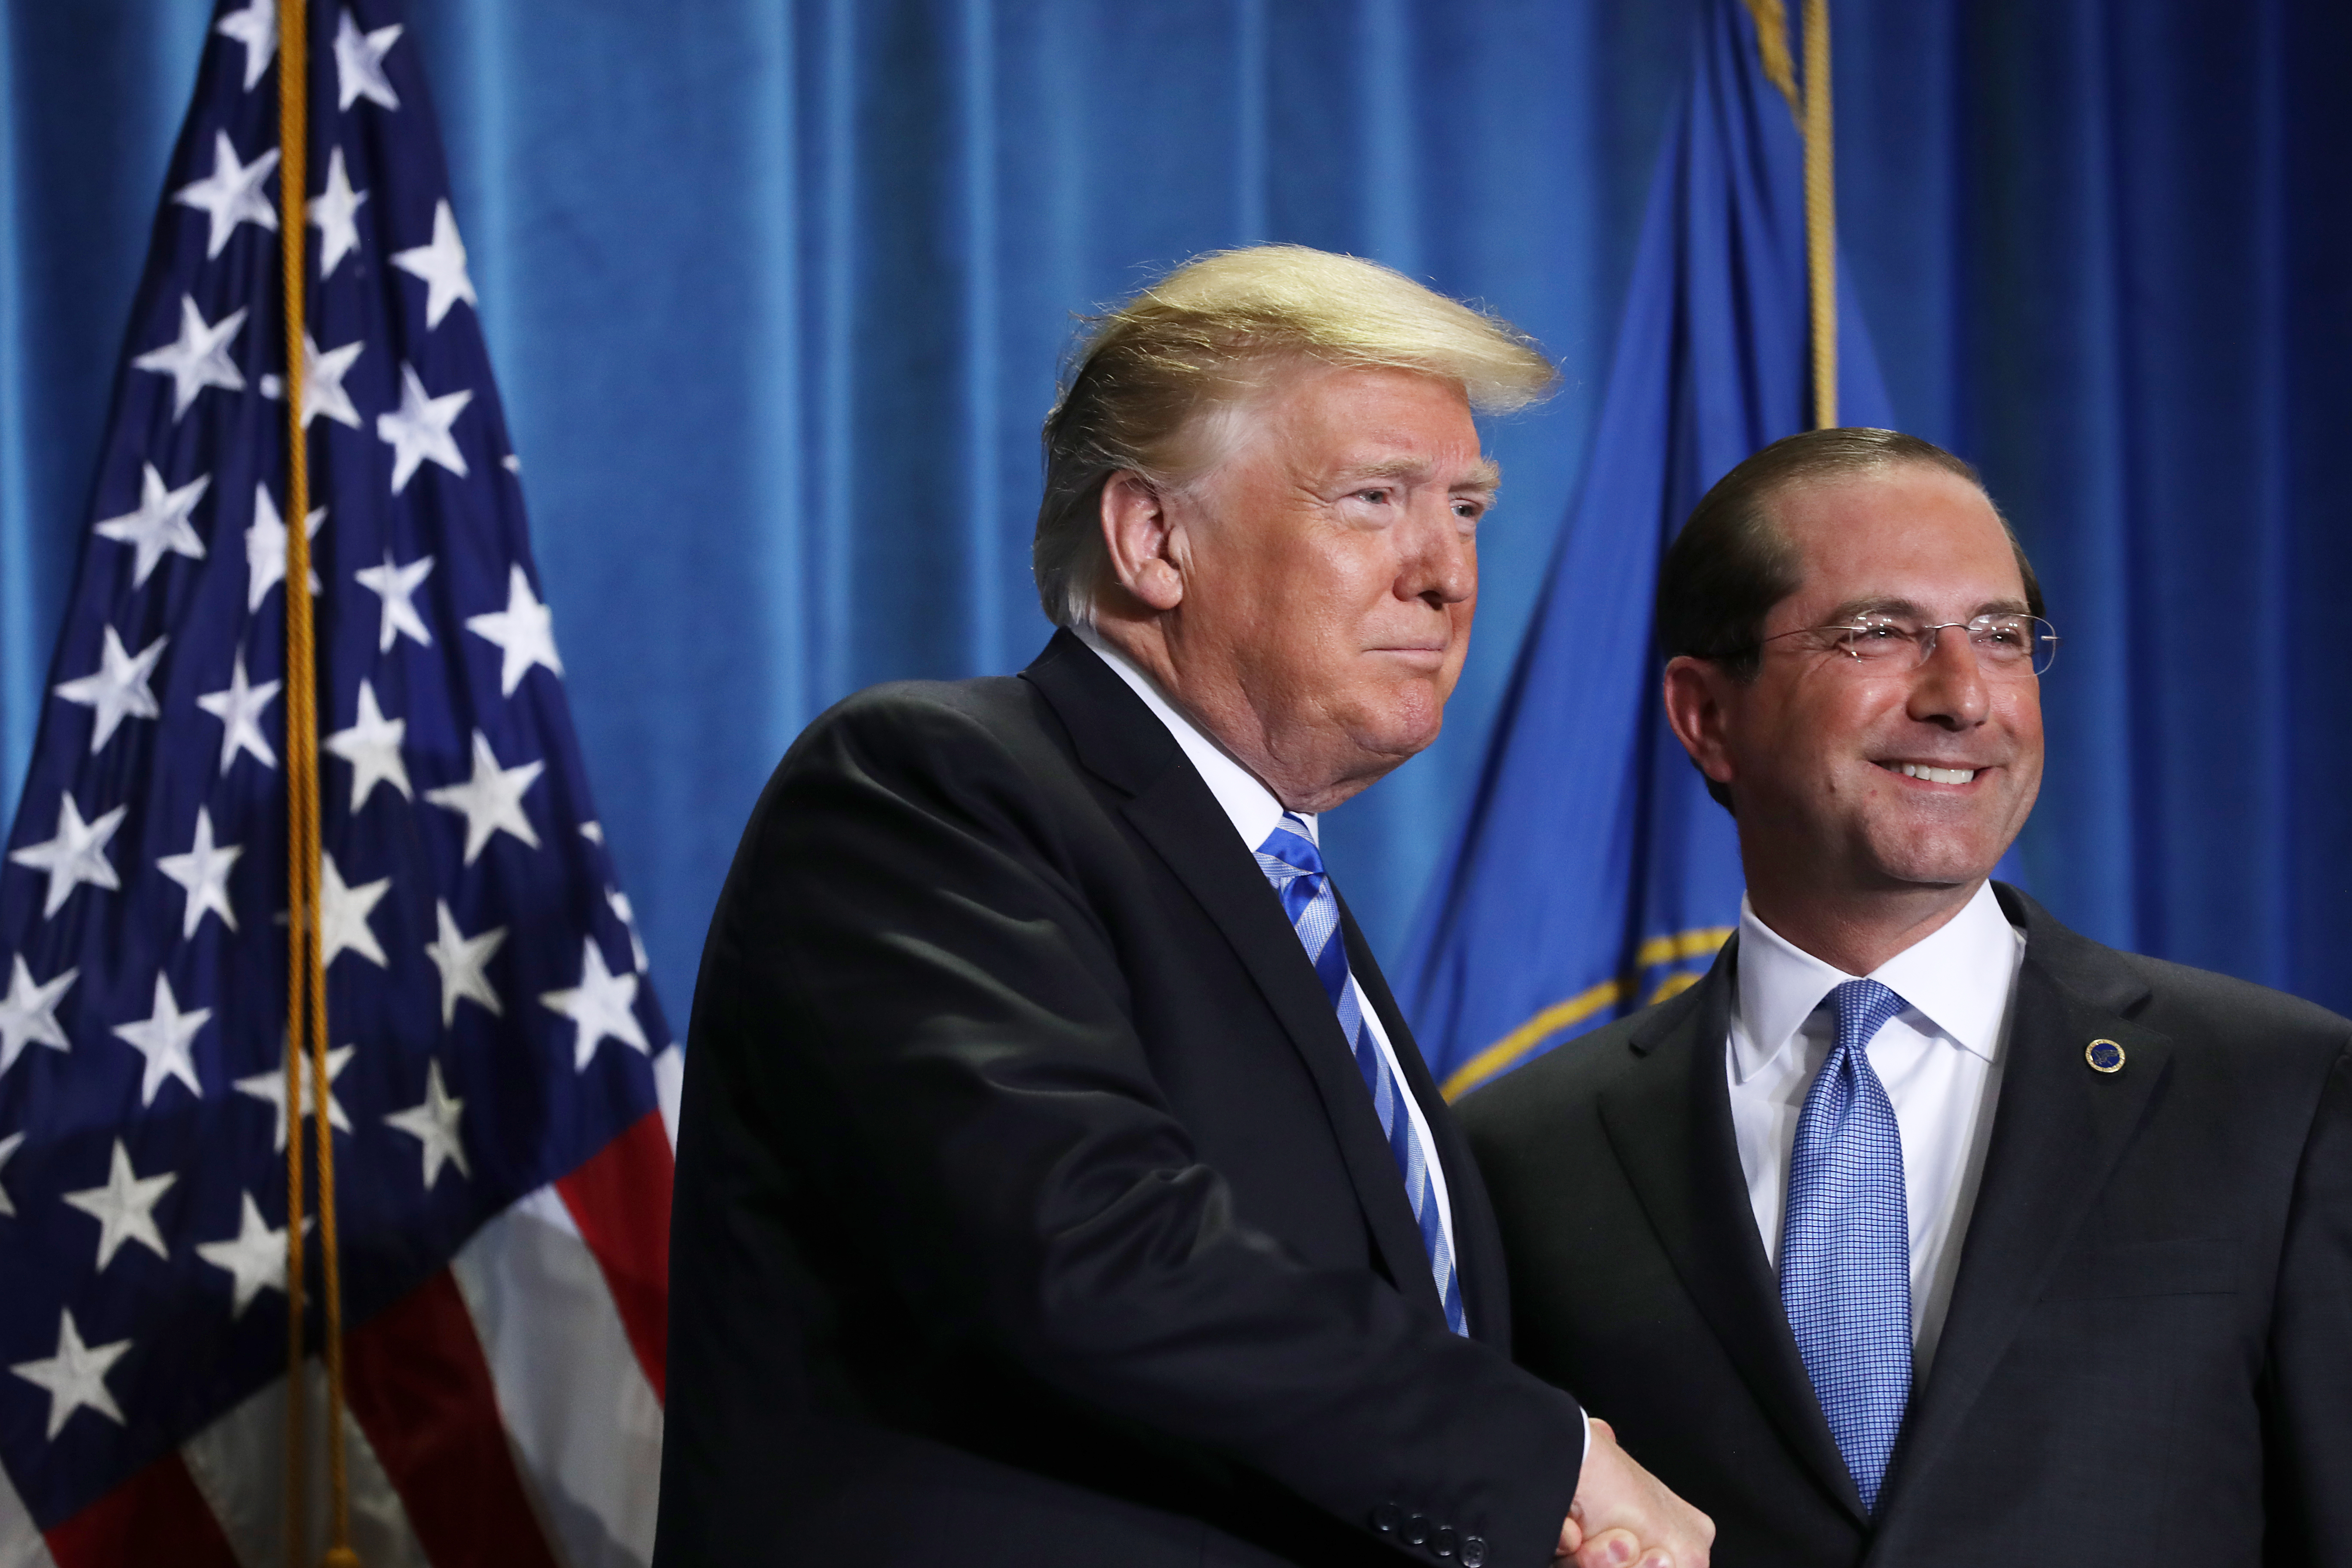 WASHINGTON, DC - OCTOBER 25: AFP OUT U.S. President Donald Trump (L) shakes hands with Health and Human Services Secretary Alex Azar before announcing a plan to overhaul how Medicare pays for certain drugs during a speech at HHS headquarters October 25, 2018 in Washington, DC. Claiming that 'global freeloading' has driven up drug costs, Trump said his plan could save Medicare more than $17 billion over five years, with the cost of some drugs dropping by as much as 30 percent. (Photo by Chip Somodevilla/Getty Images)